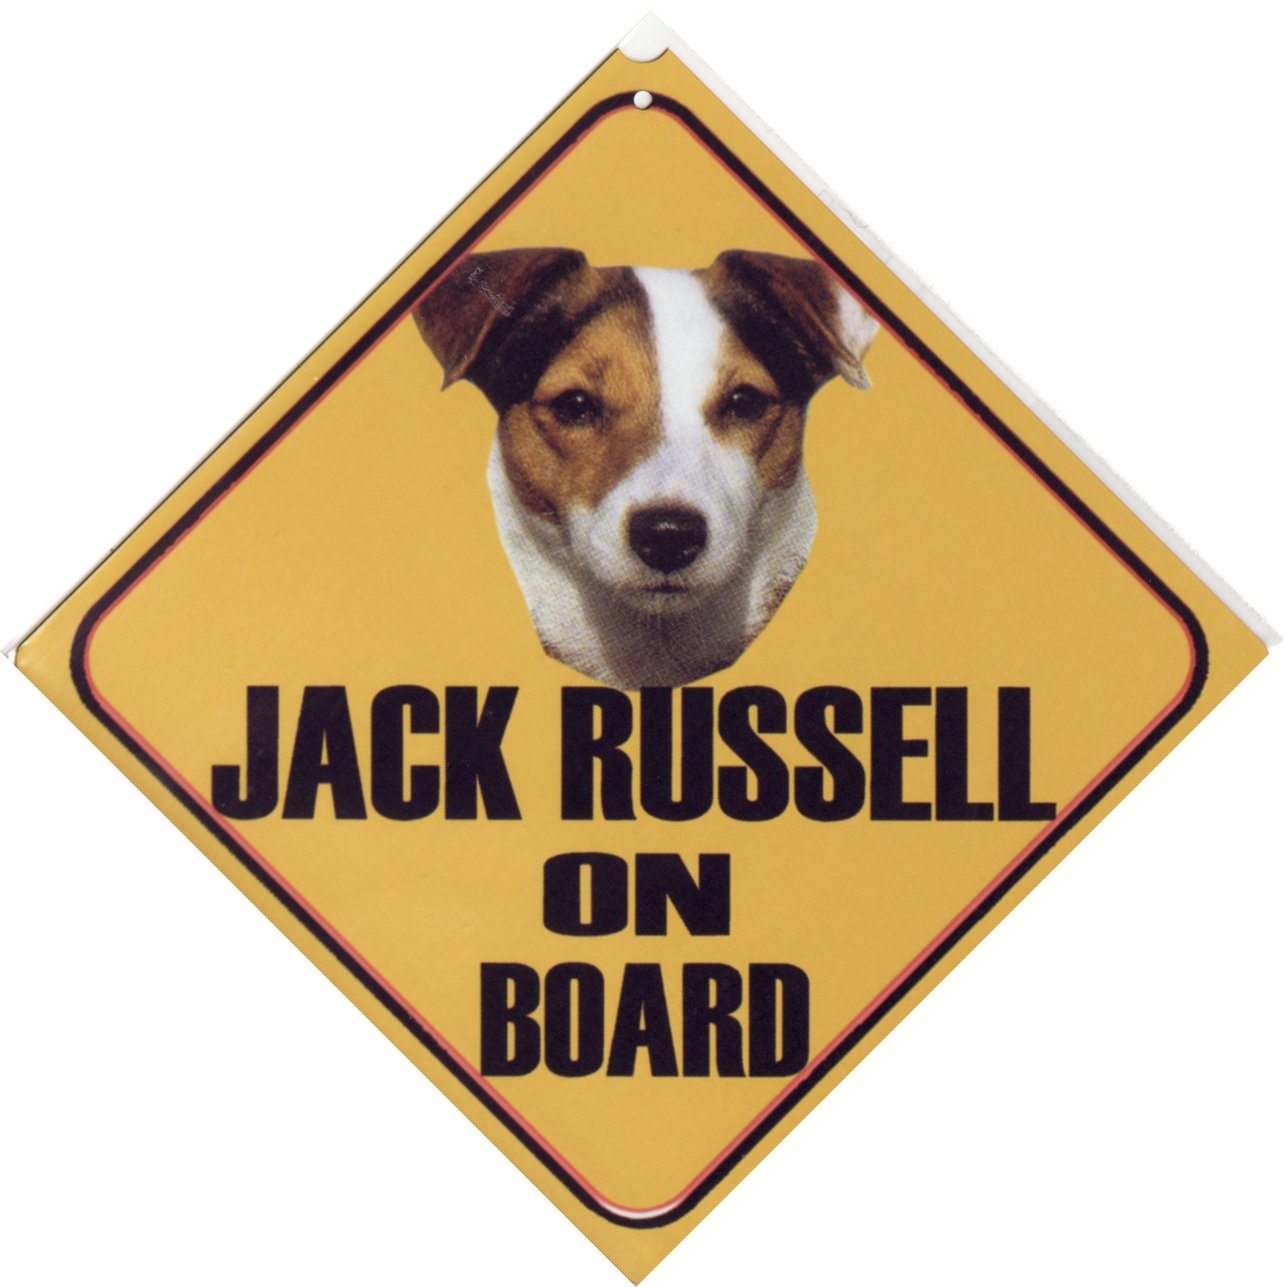 http://www.picgifs.com/graphics/j/jack-russel/graphics-jack-russel-174564.jpg